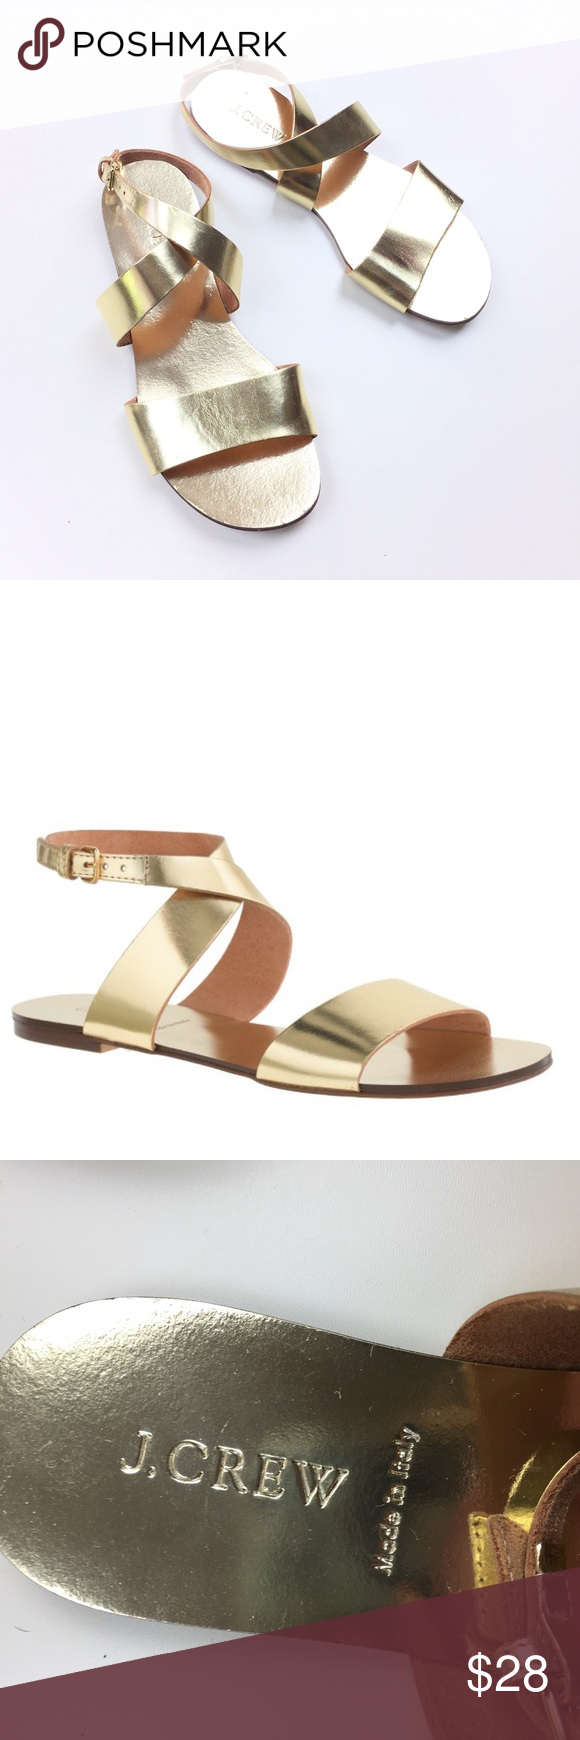 e2b9794110e J. Crew Gold Metallic Callie Made in Italy Sandals Great pair of J. Crew  Callie sandals. Metallic gold. Made it Italy. Very good condition - a few  scuffs ...